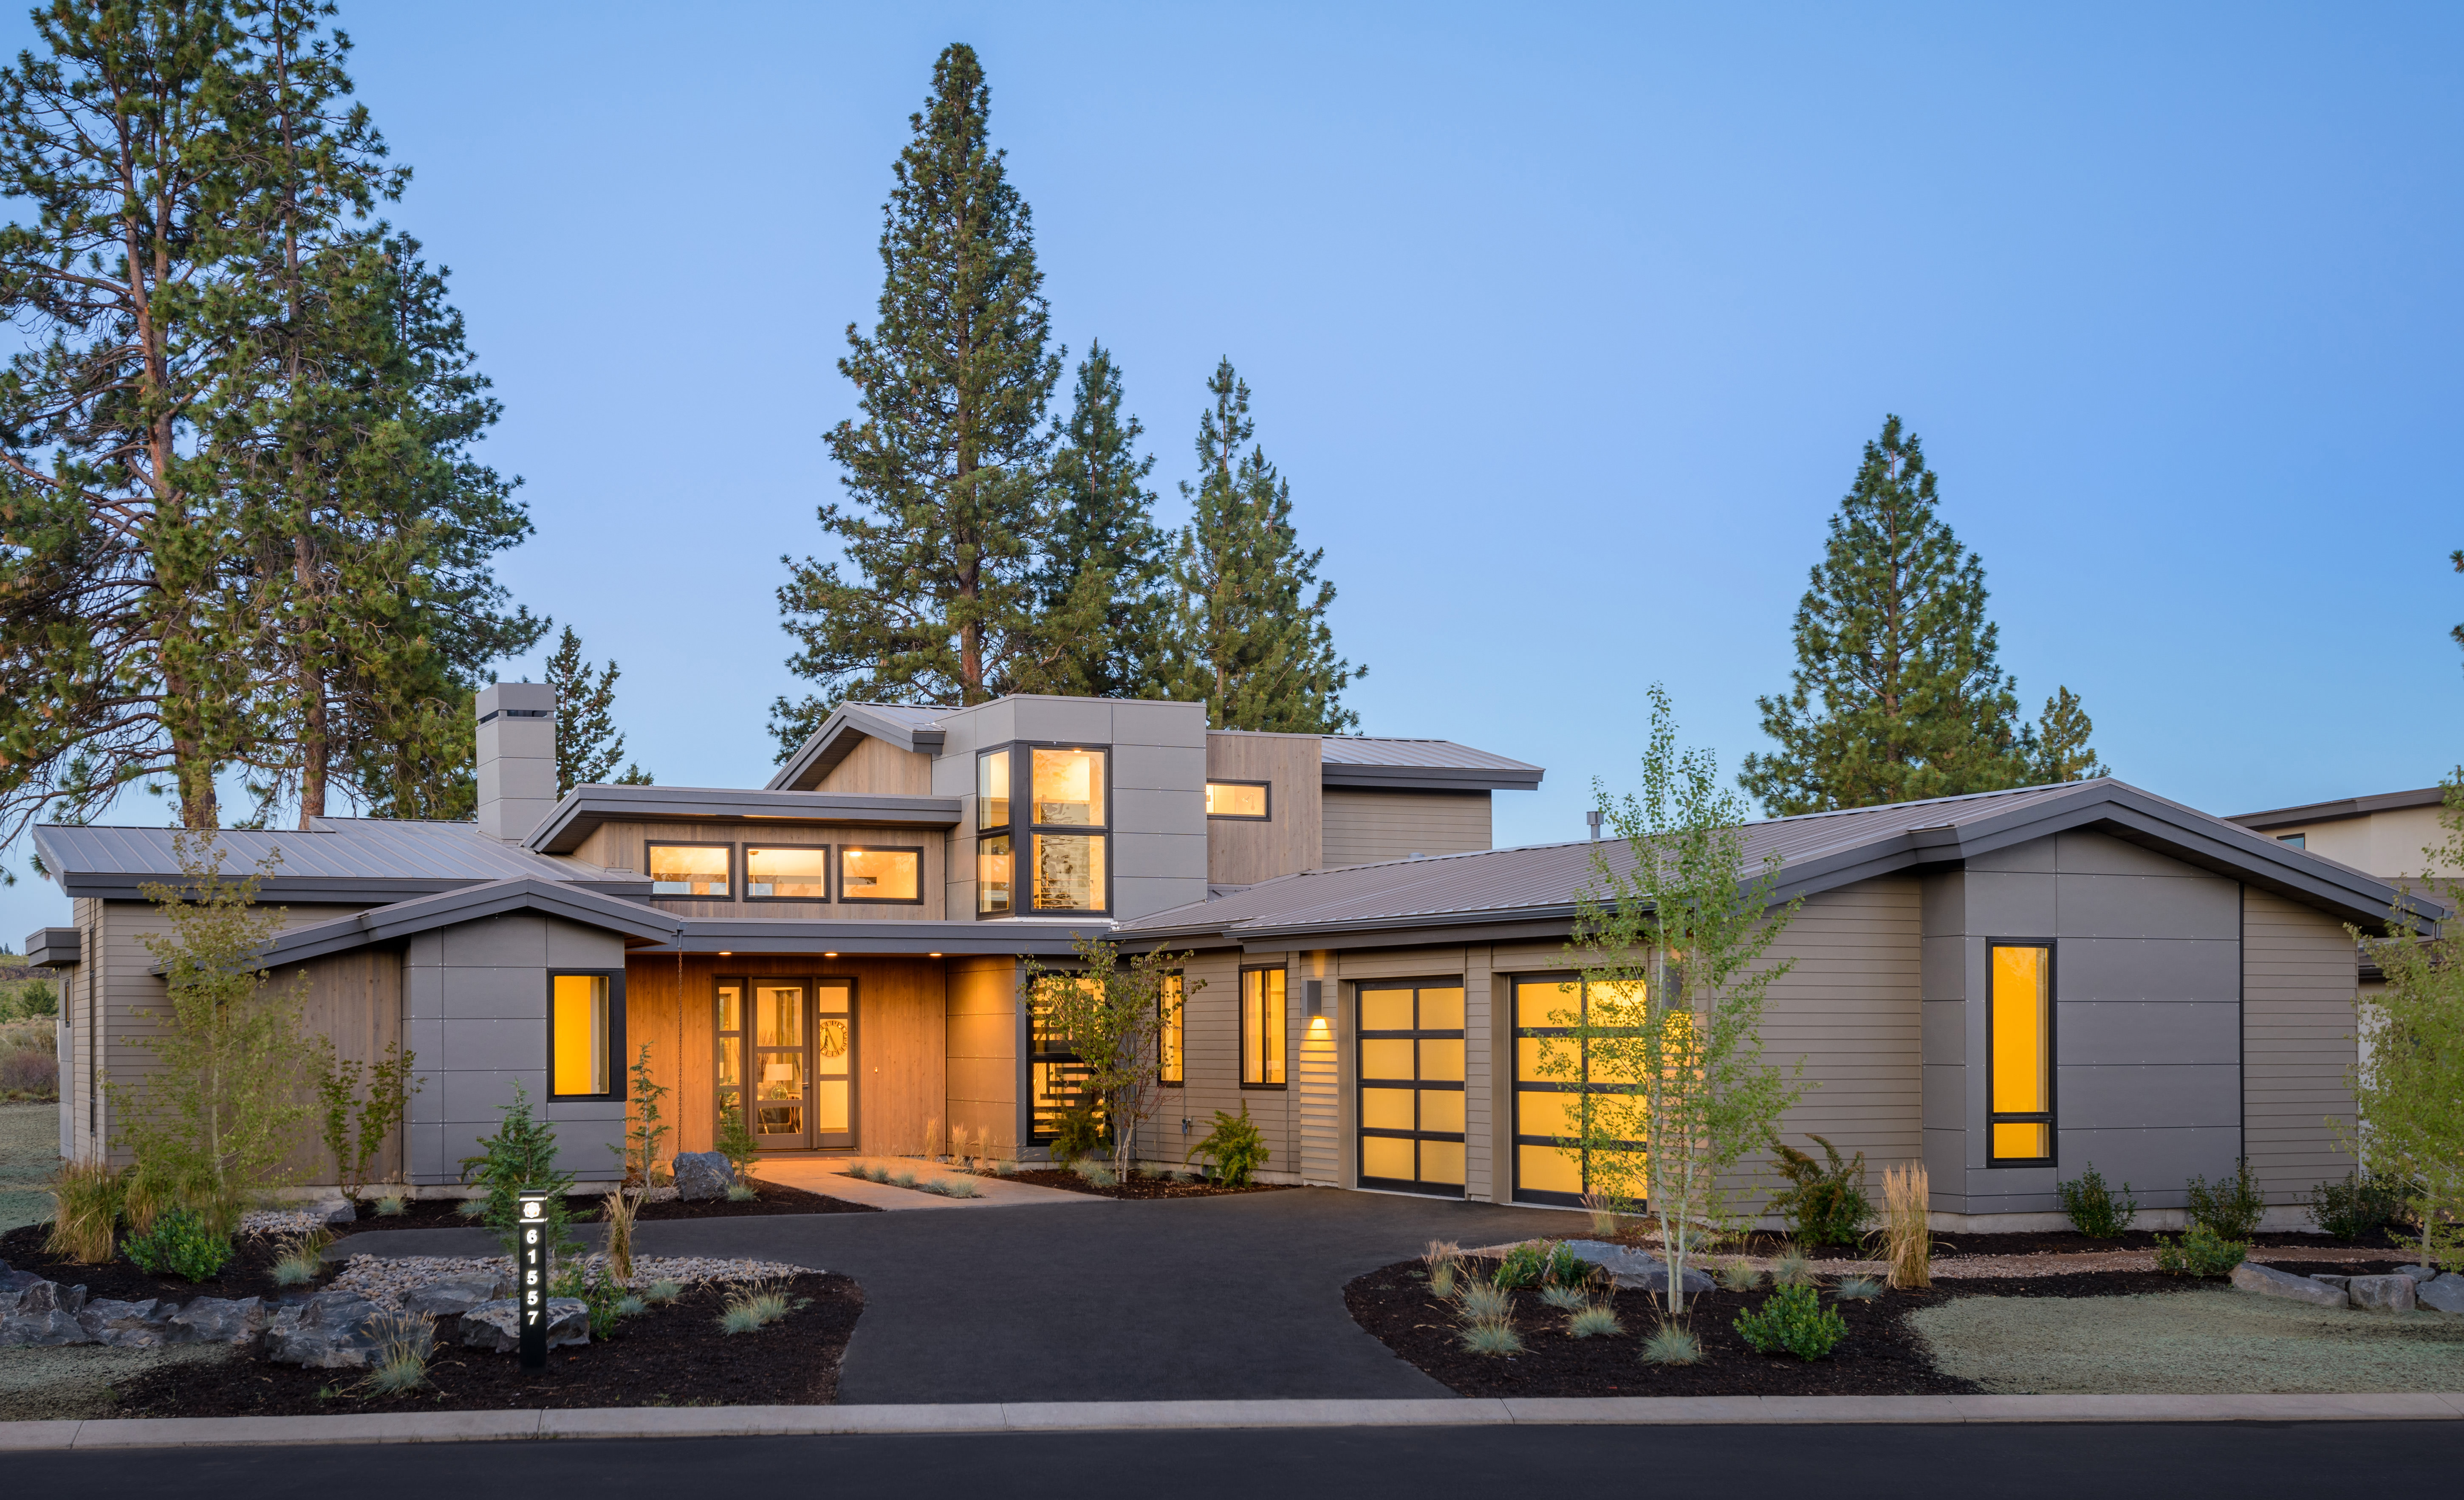 32 types of architectural styles for the home modern Modern ranch homes